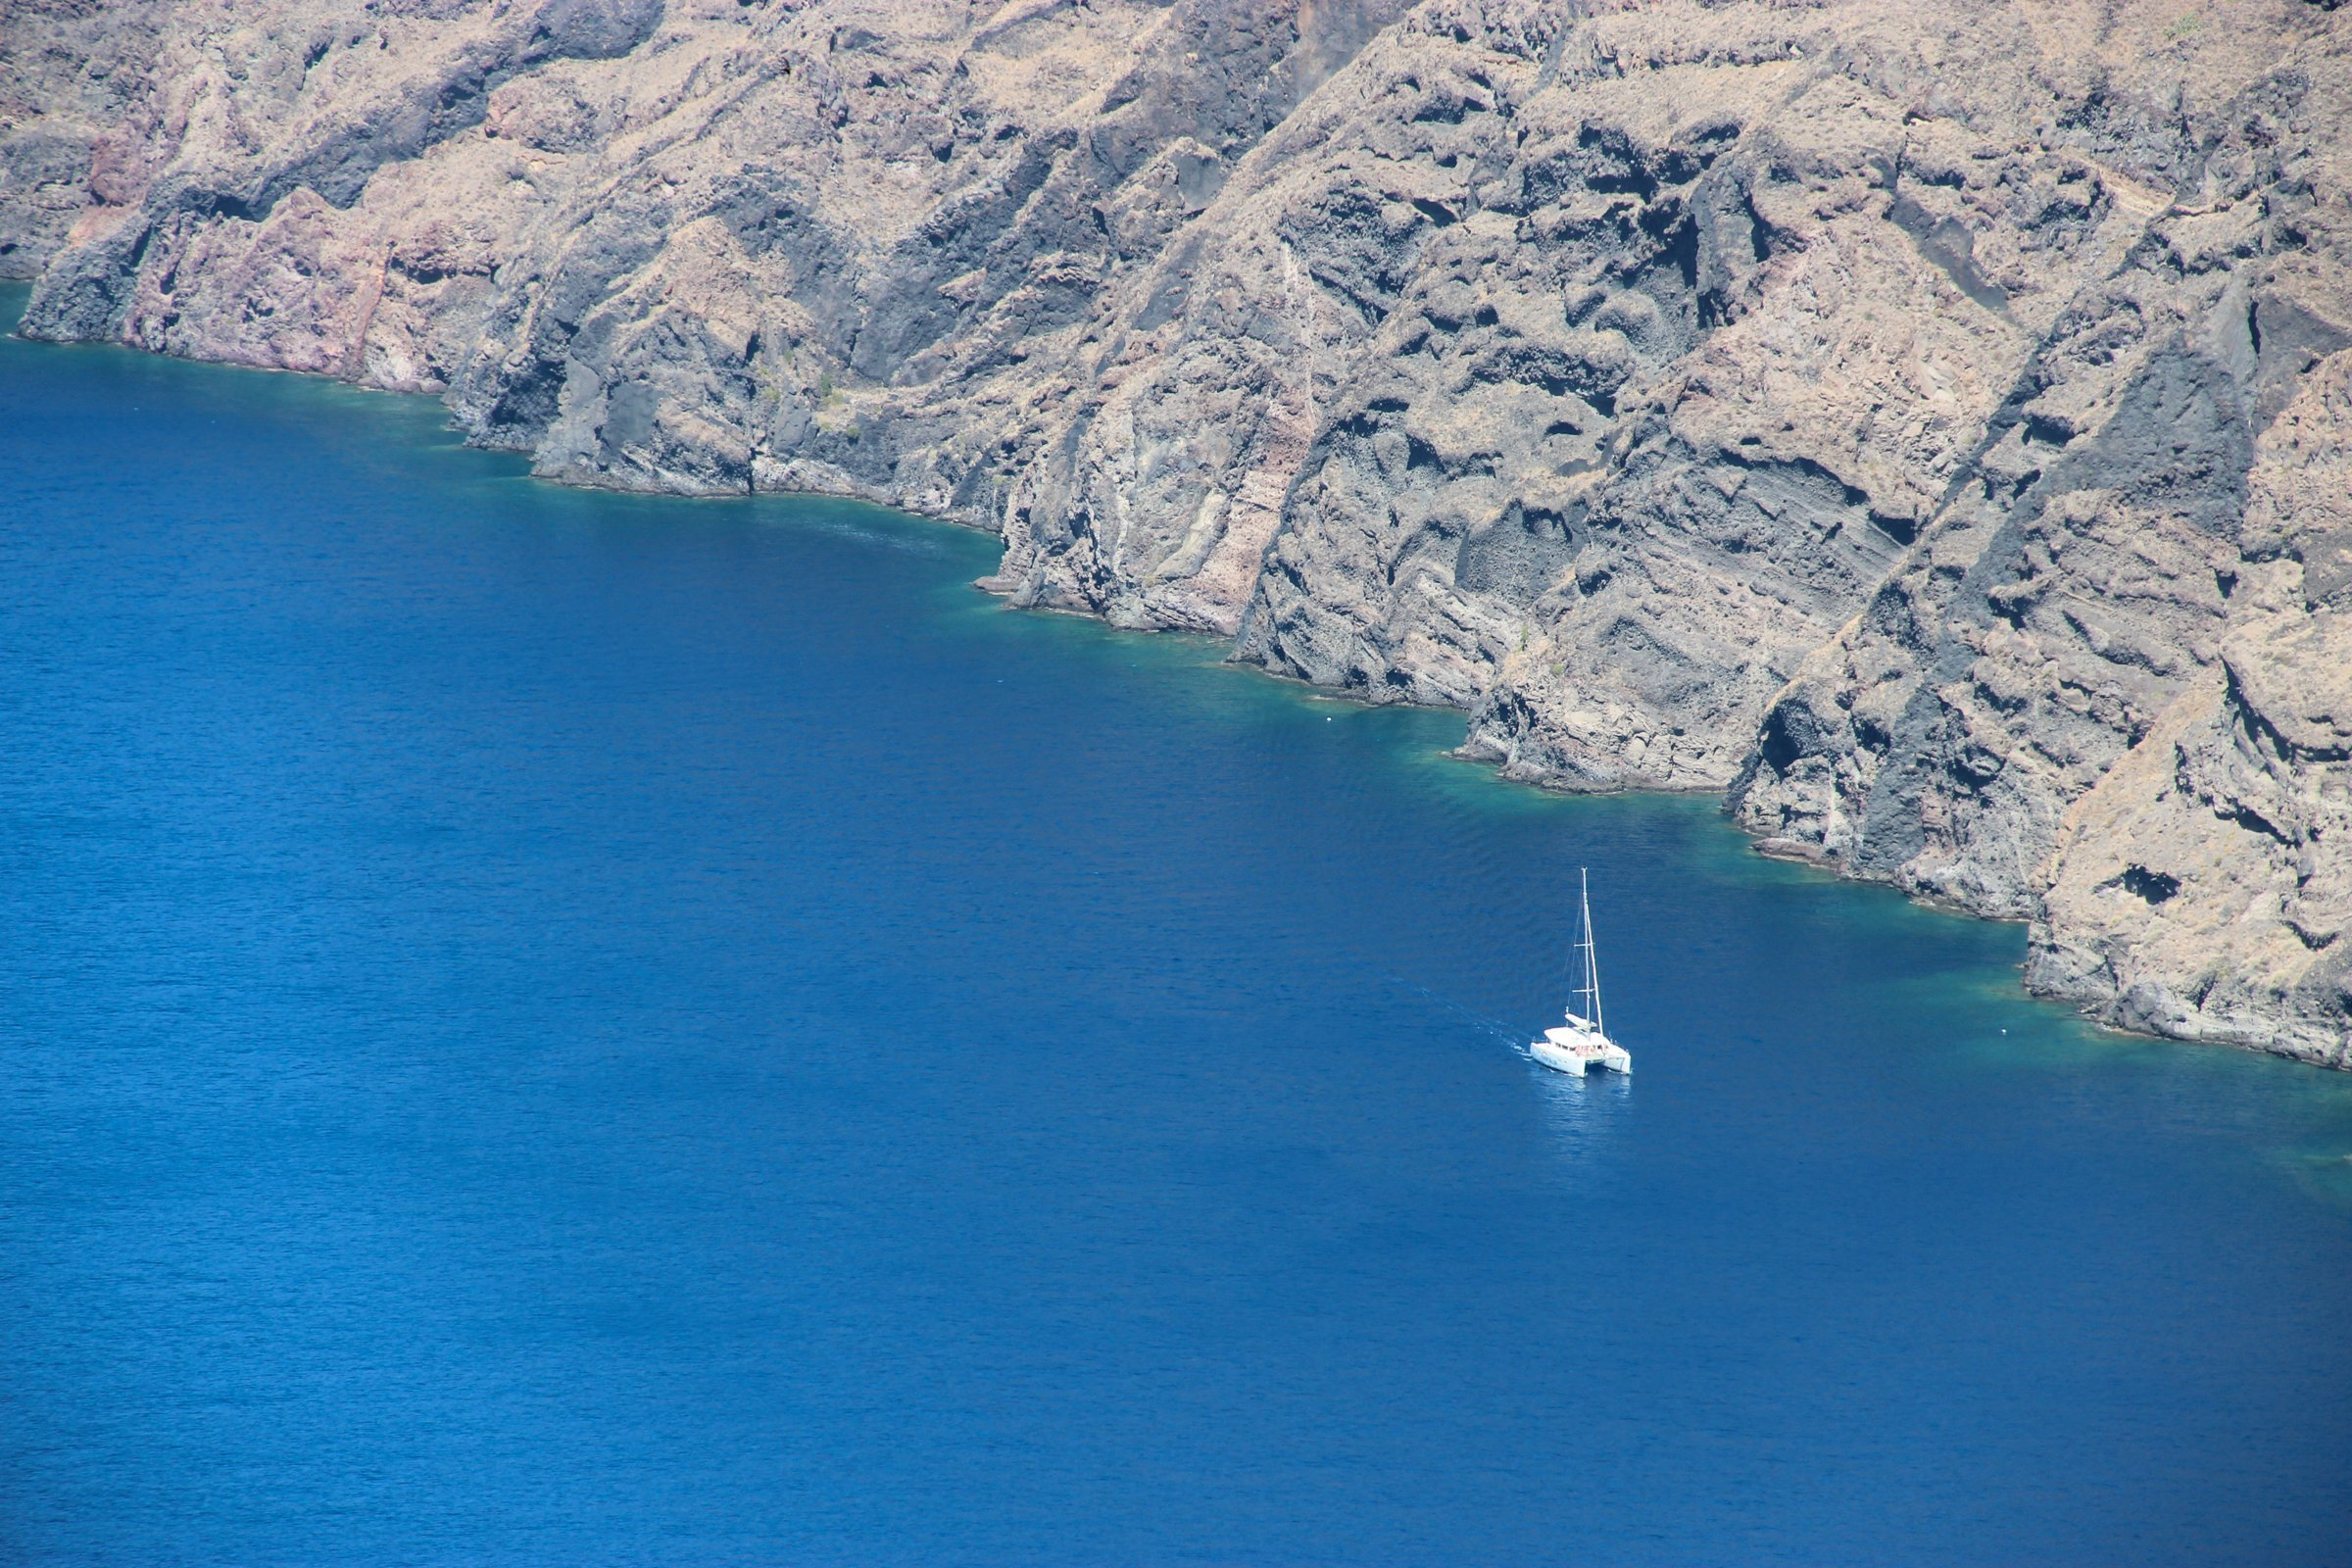 Sailing Yacht Near Rocky Cliff Shore